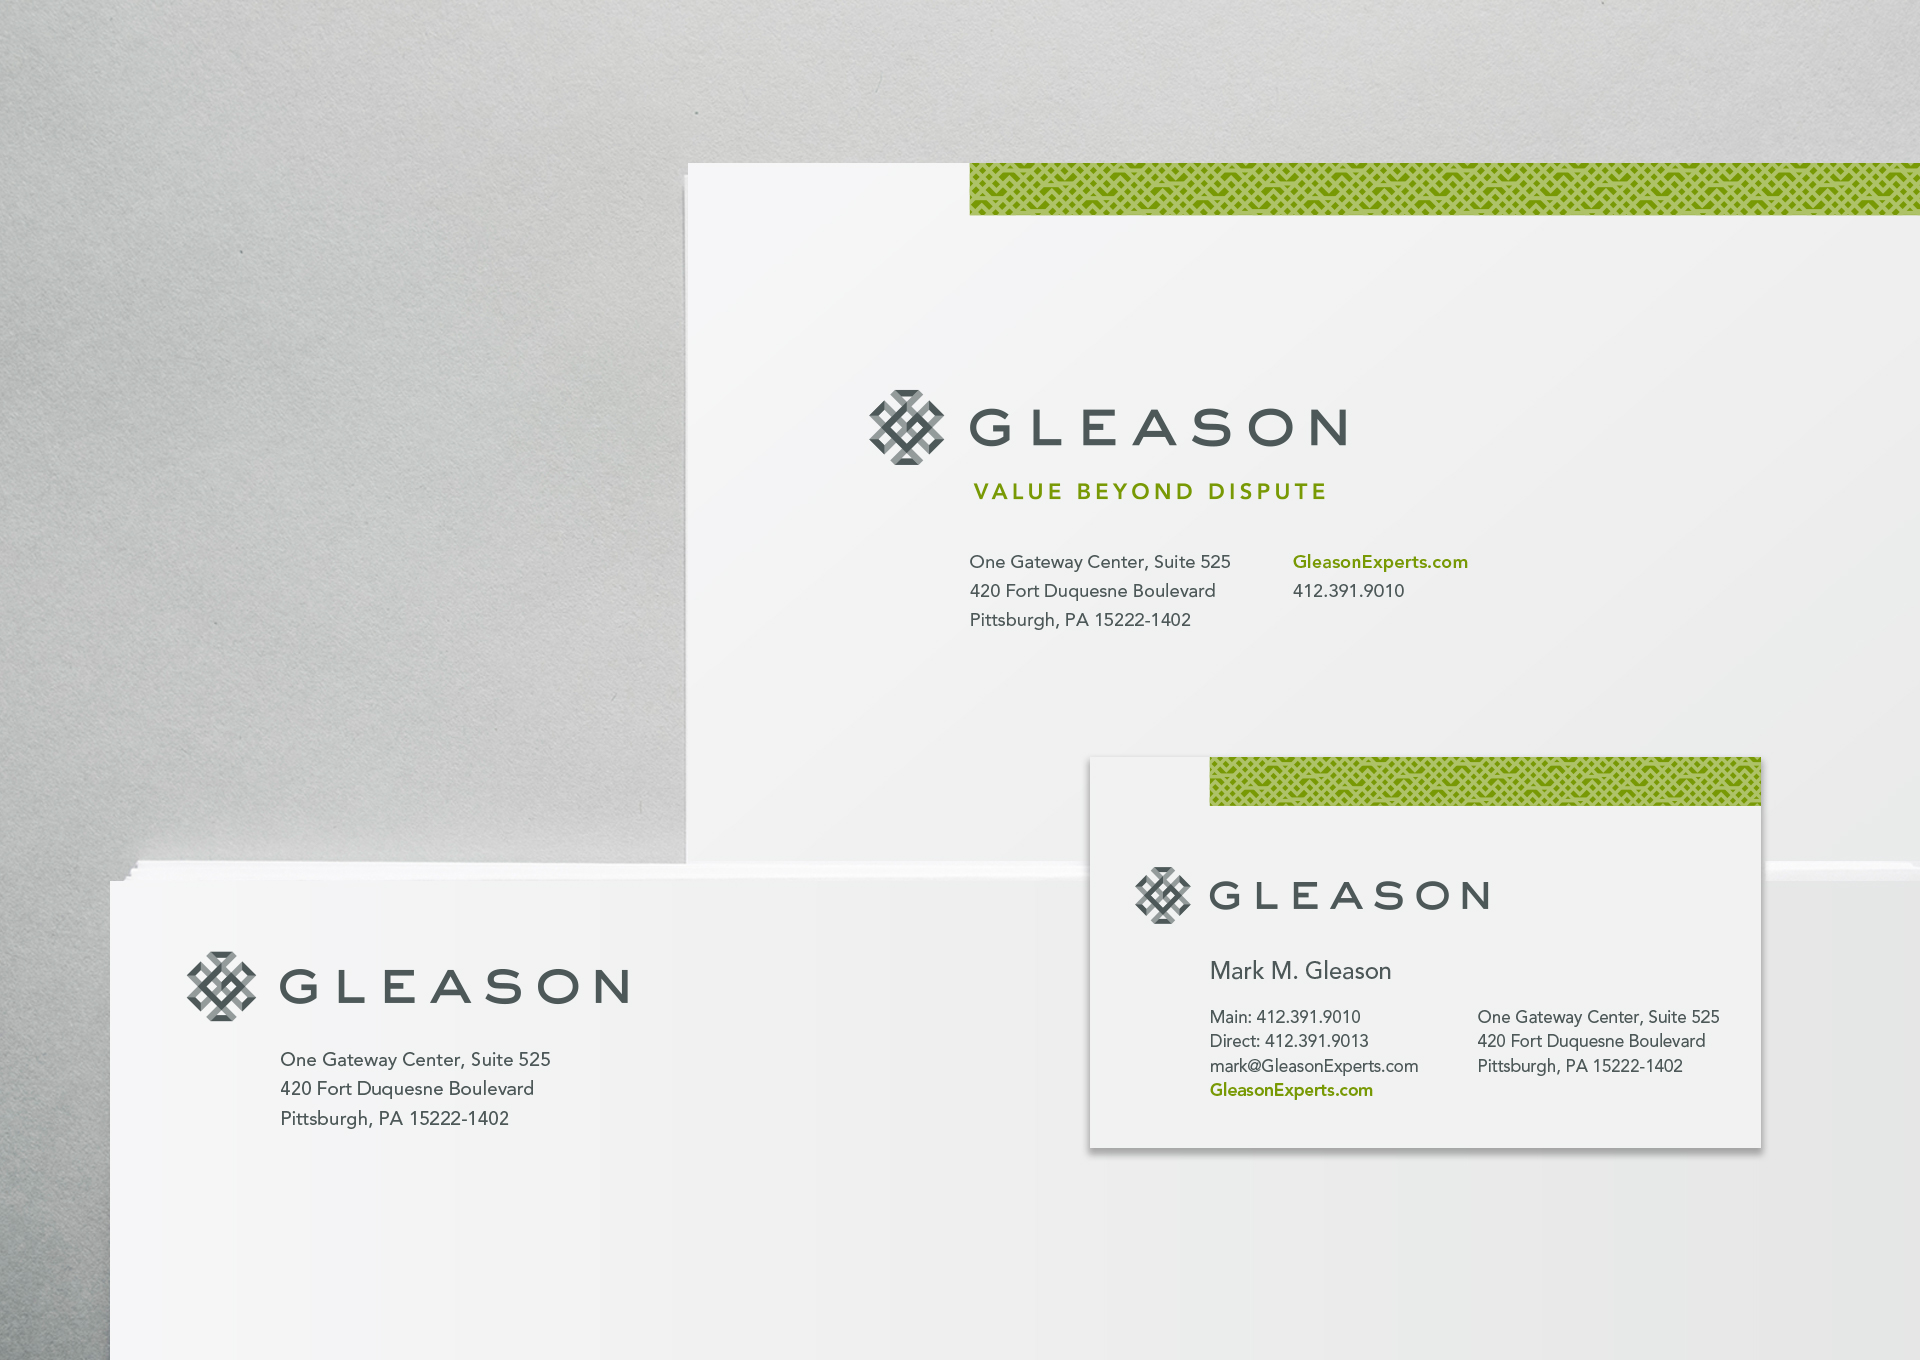 Gleason Brand stationery